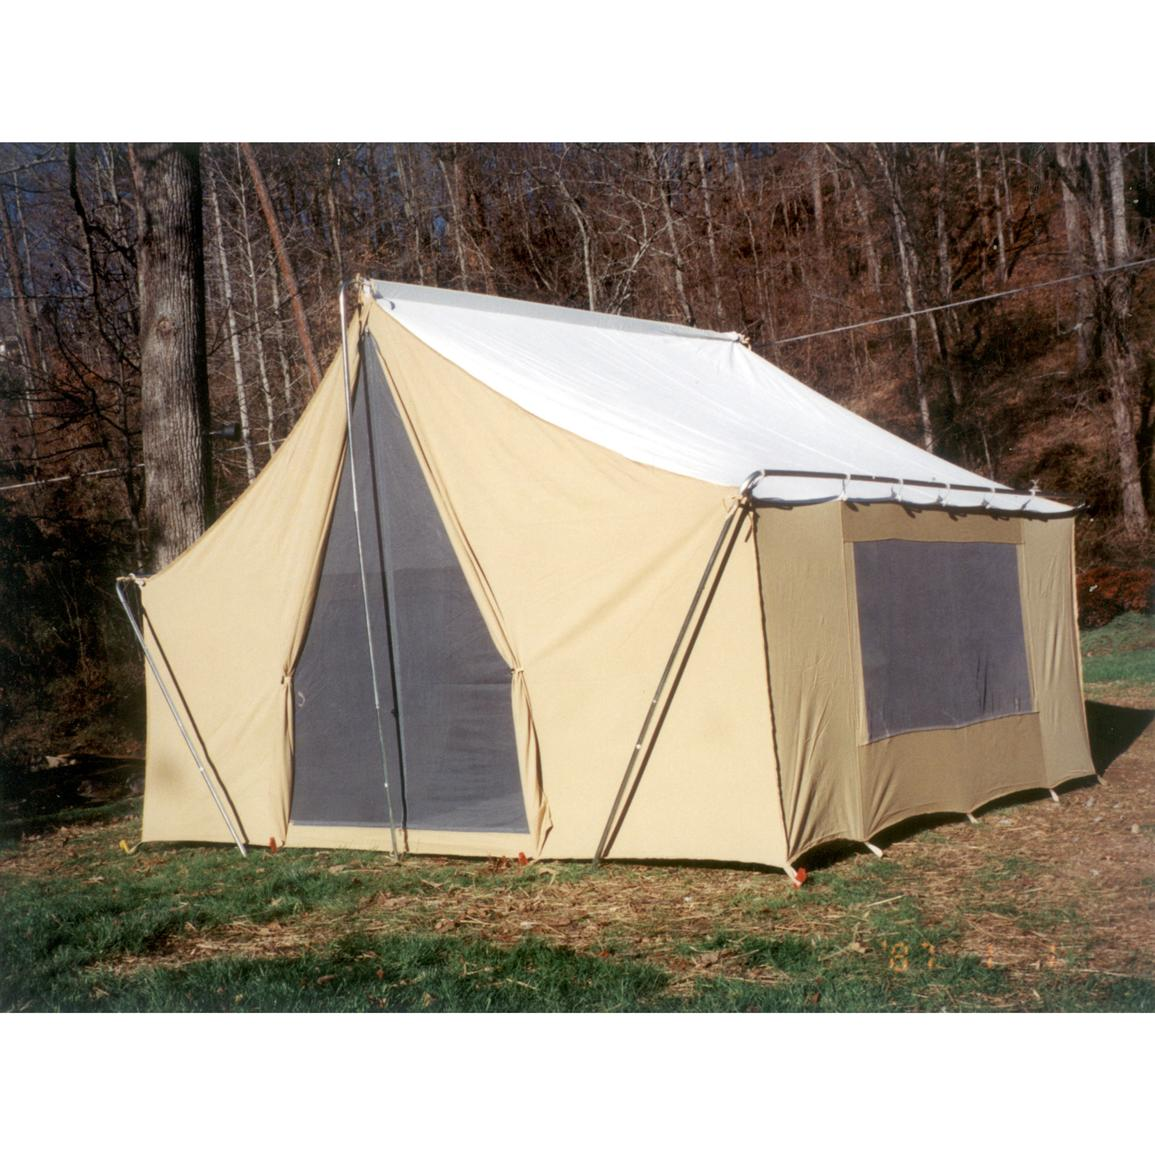 Canvas Cabin Tent By Trek 216558 Backpacking Tents